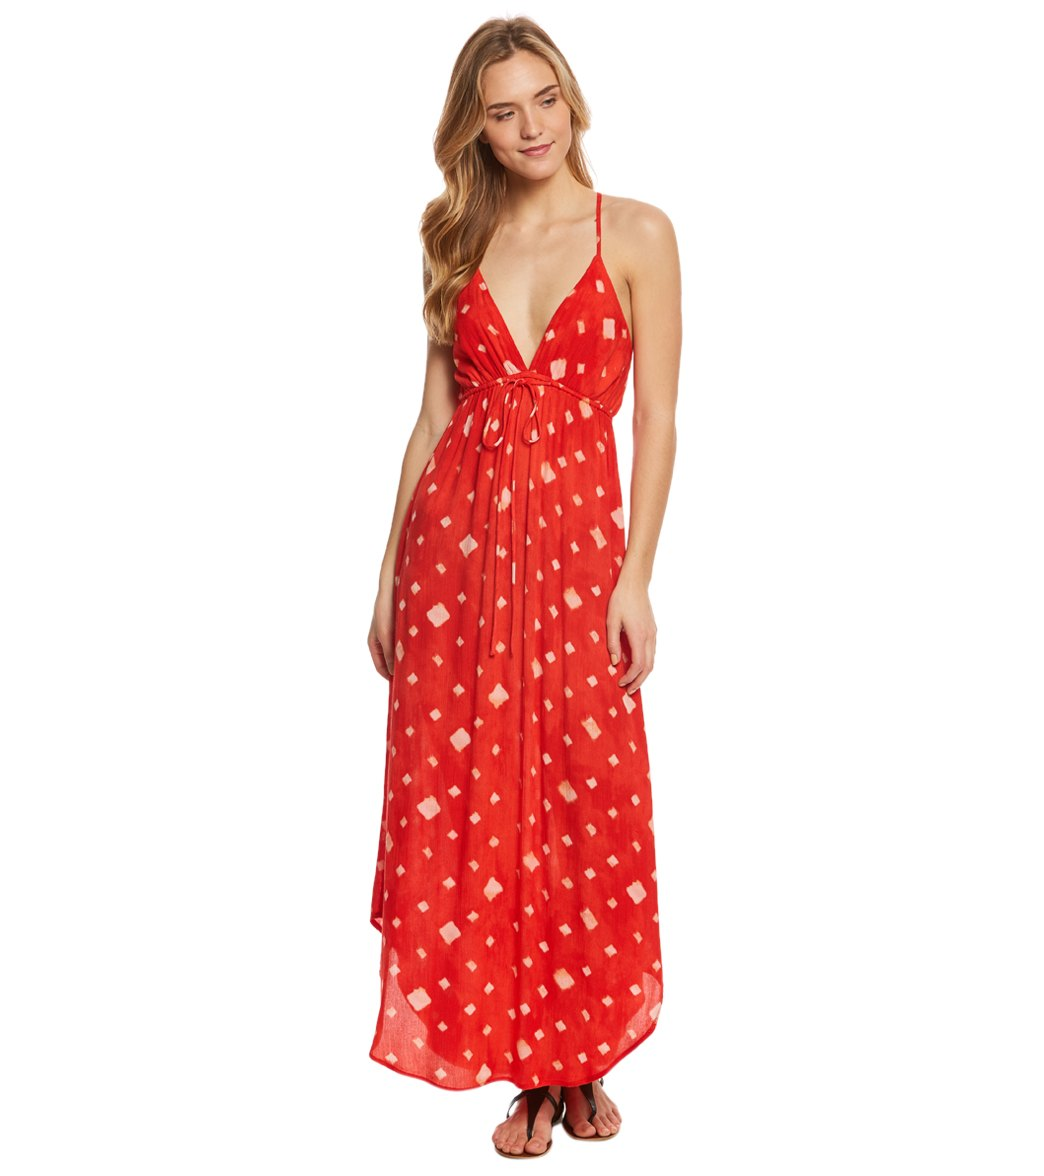 7681e534ef0 Billabong Don t Mind Maxi Dress at SwimOutlet.com - Free Shipping